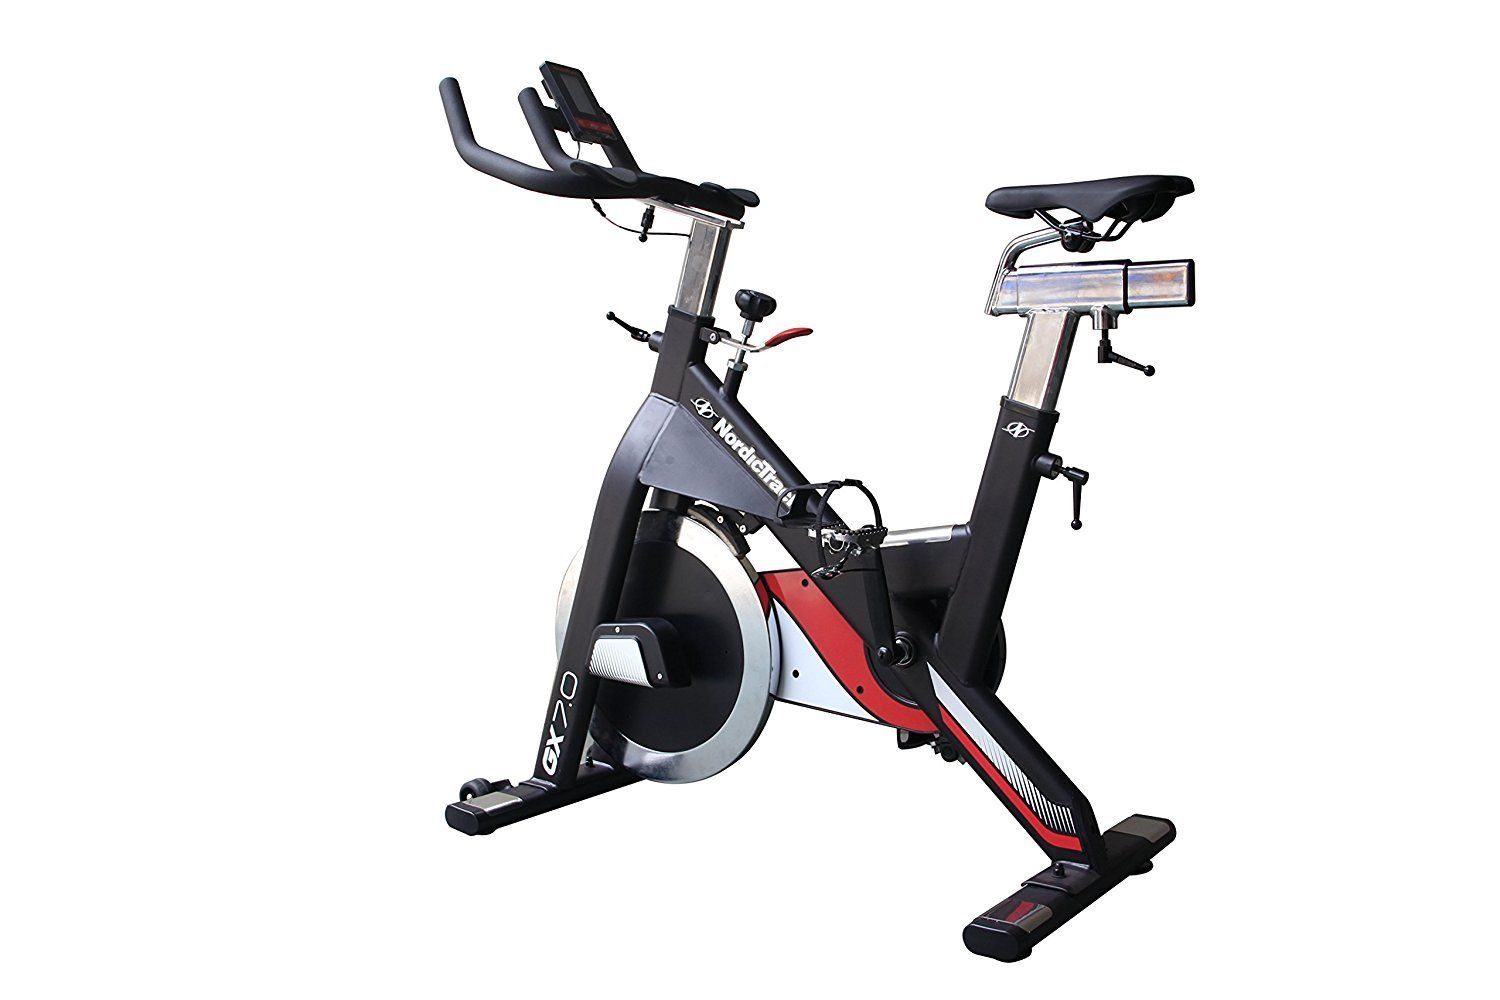 New nordictrack gx indoor bike black fitness